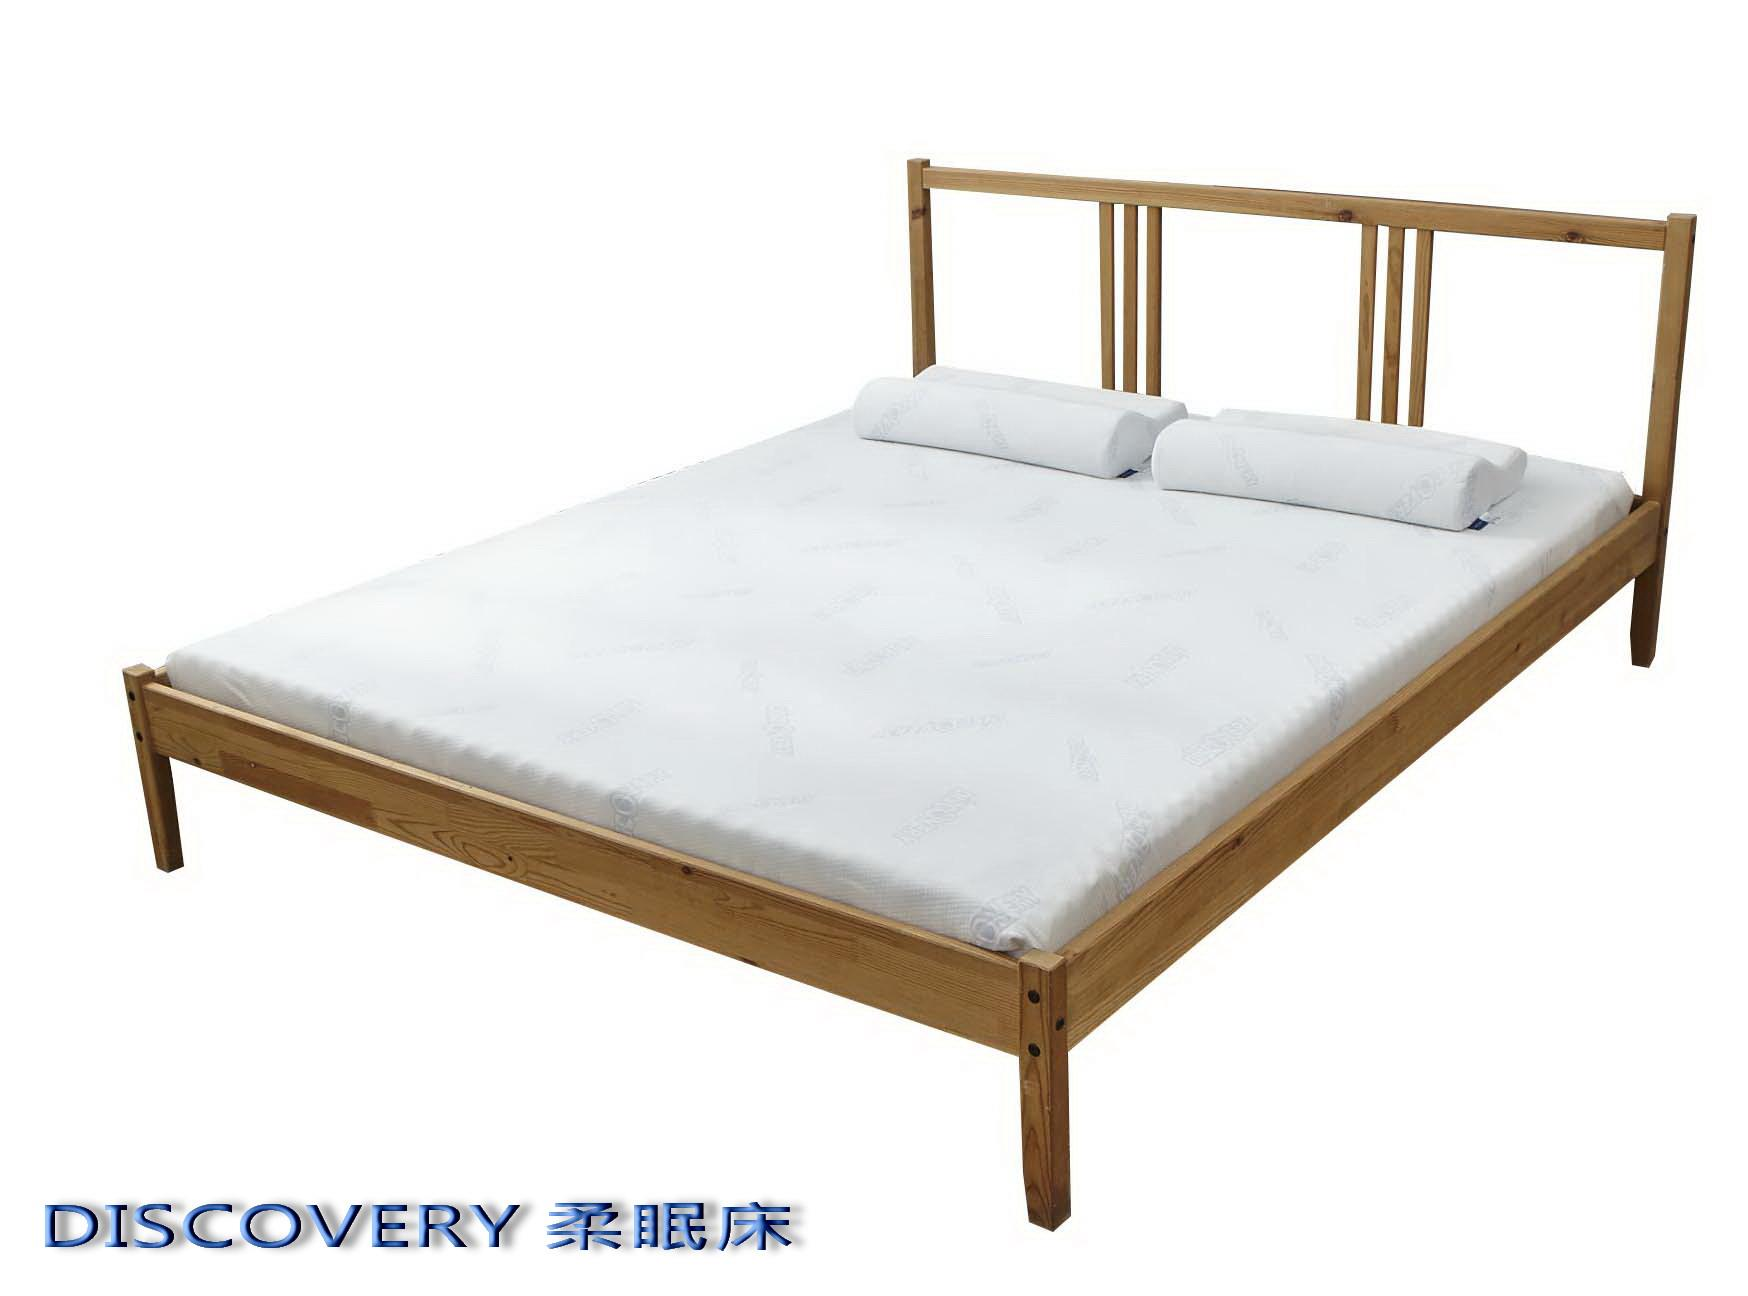 DISCOVERY柔眠床